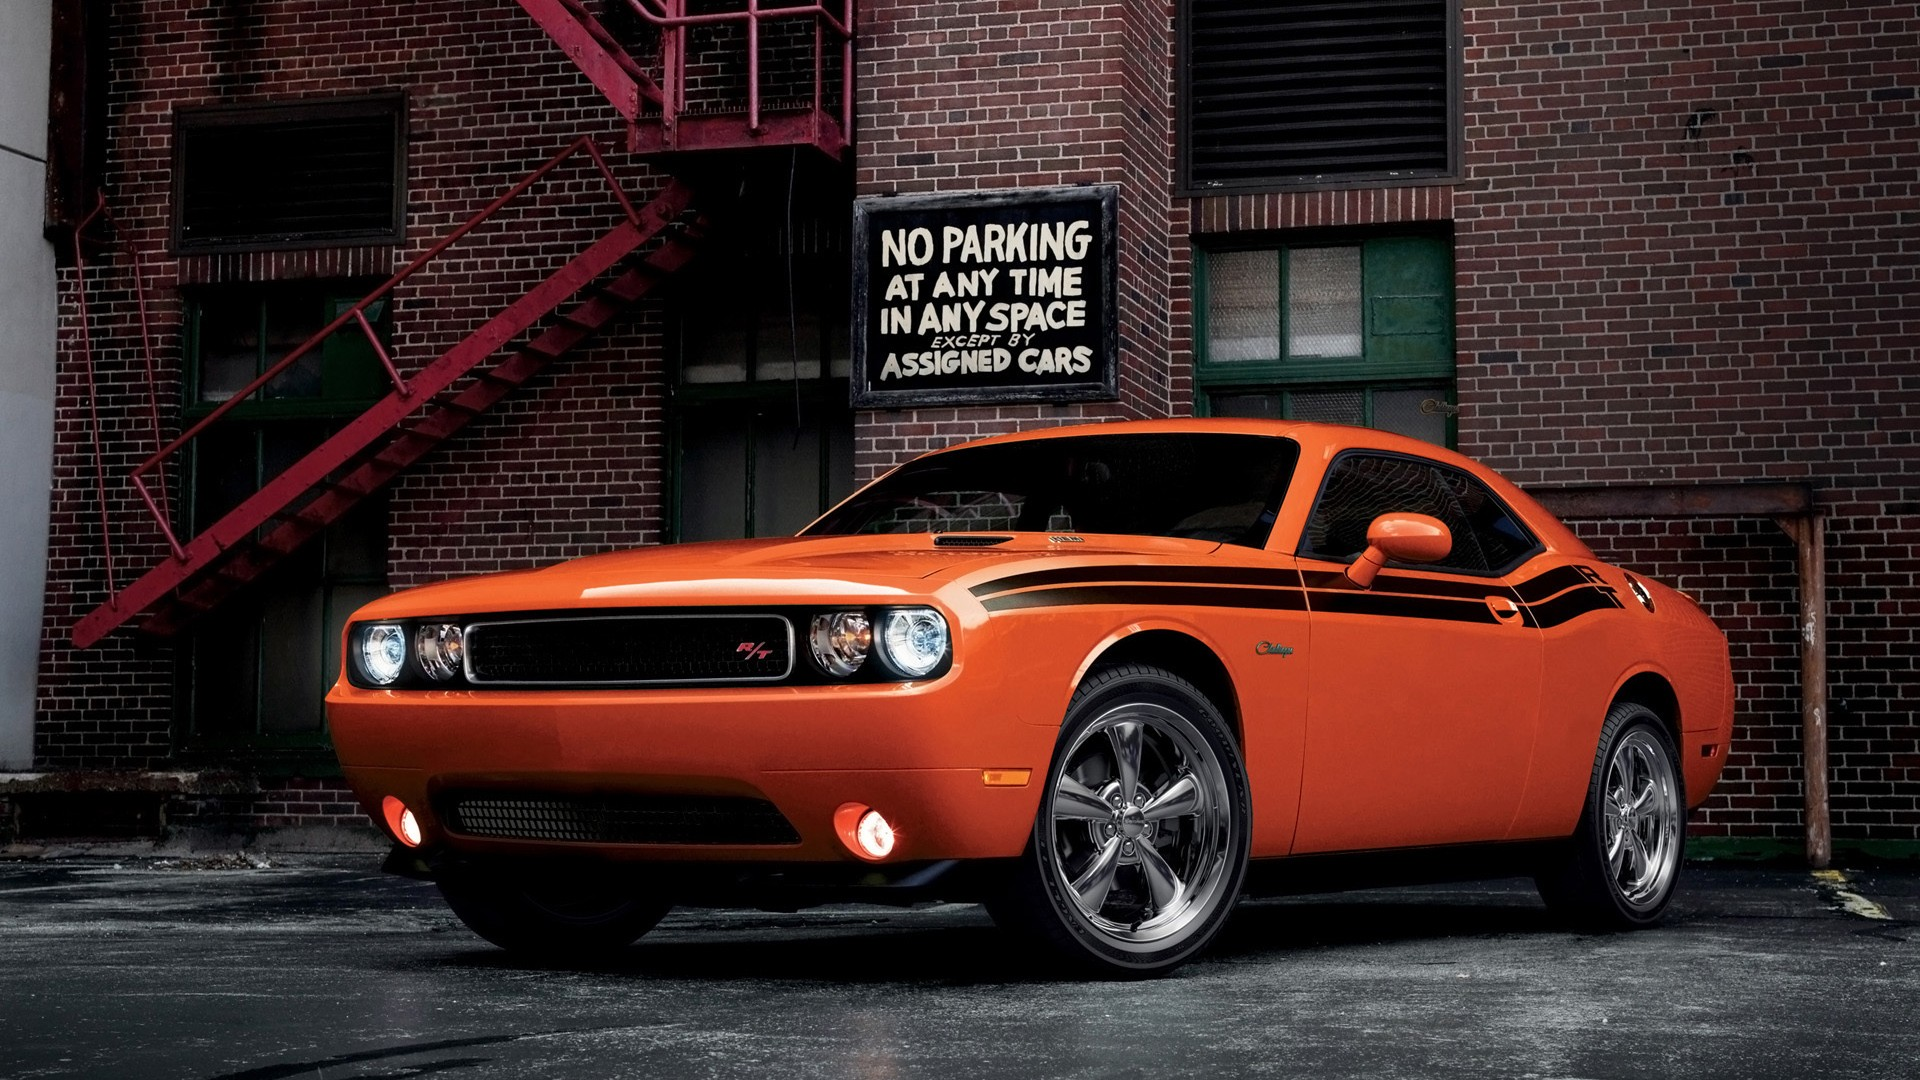 2014 dodge challenger rt classic wallpaper in 1920x1080 resolution. Cars Review. Best American Auto & Cars Review